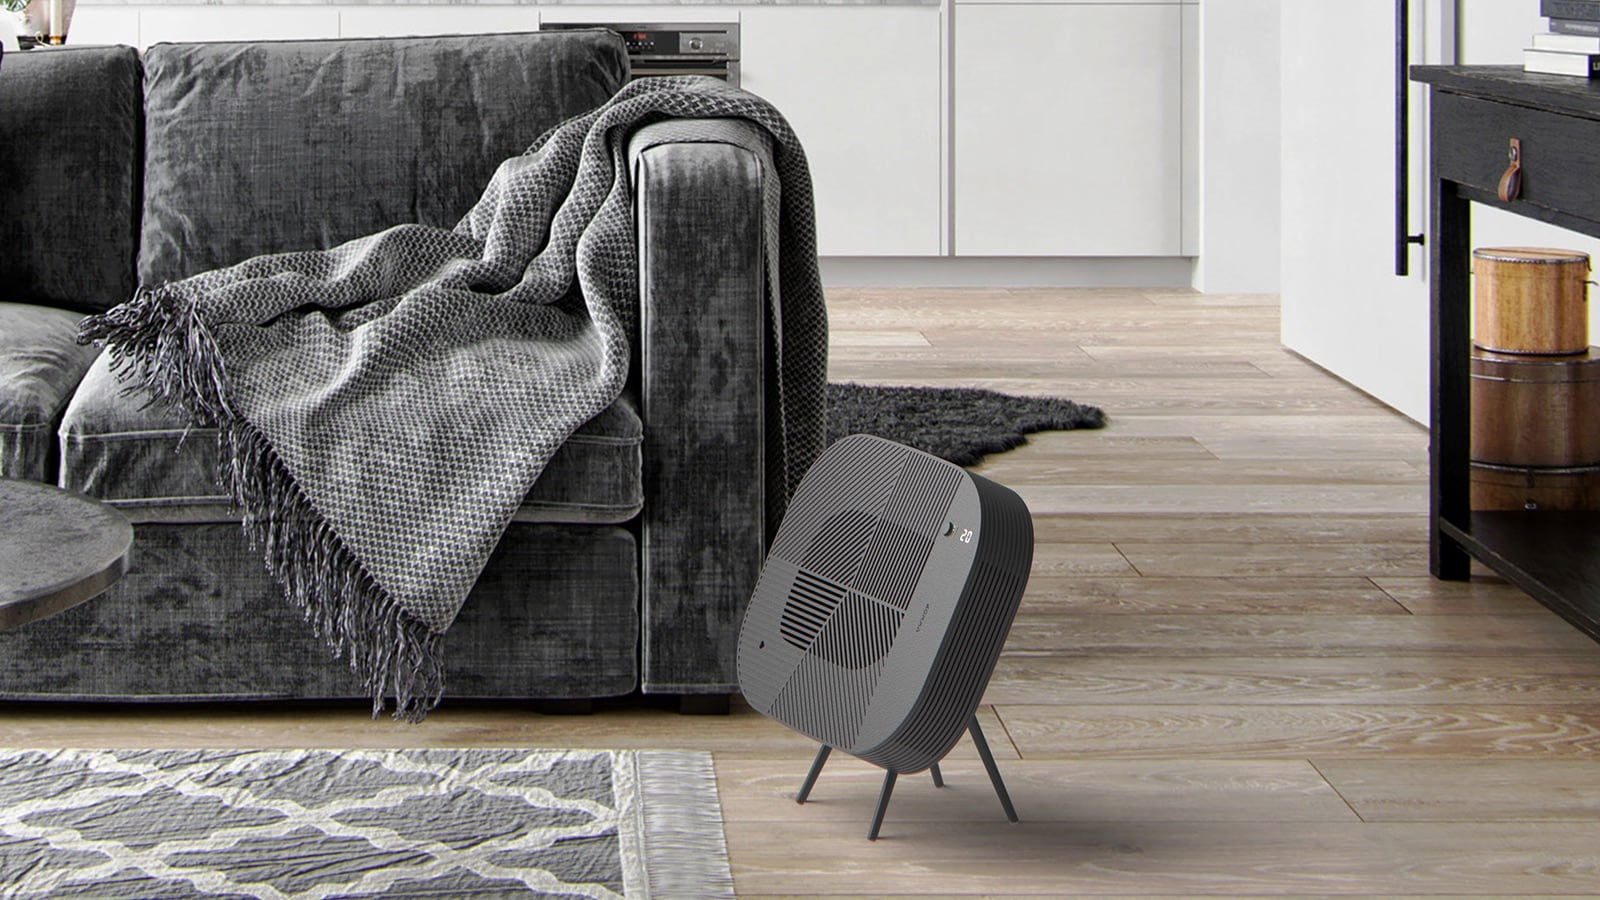 Löv stylish air purifier provides a new way to style your space